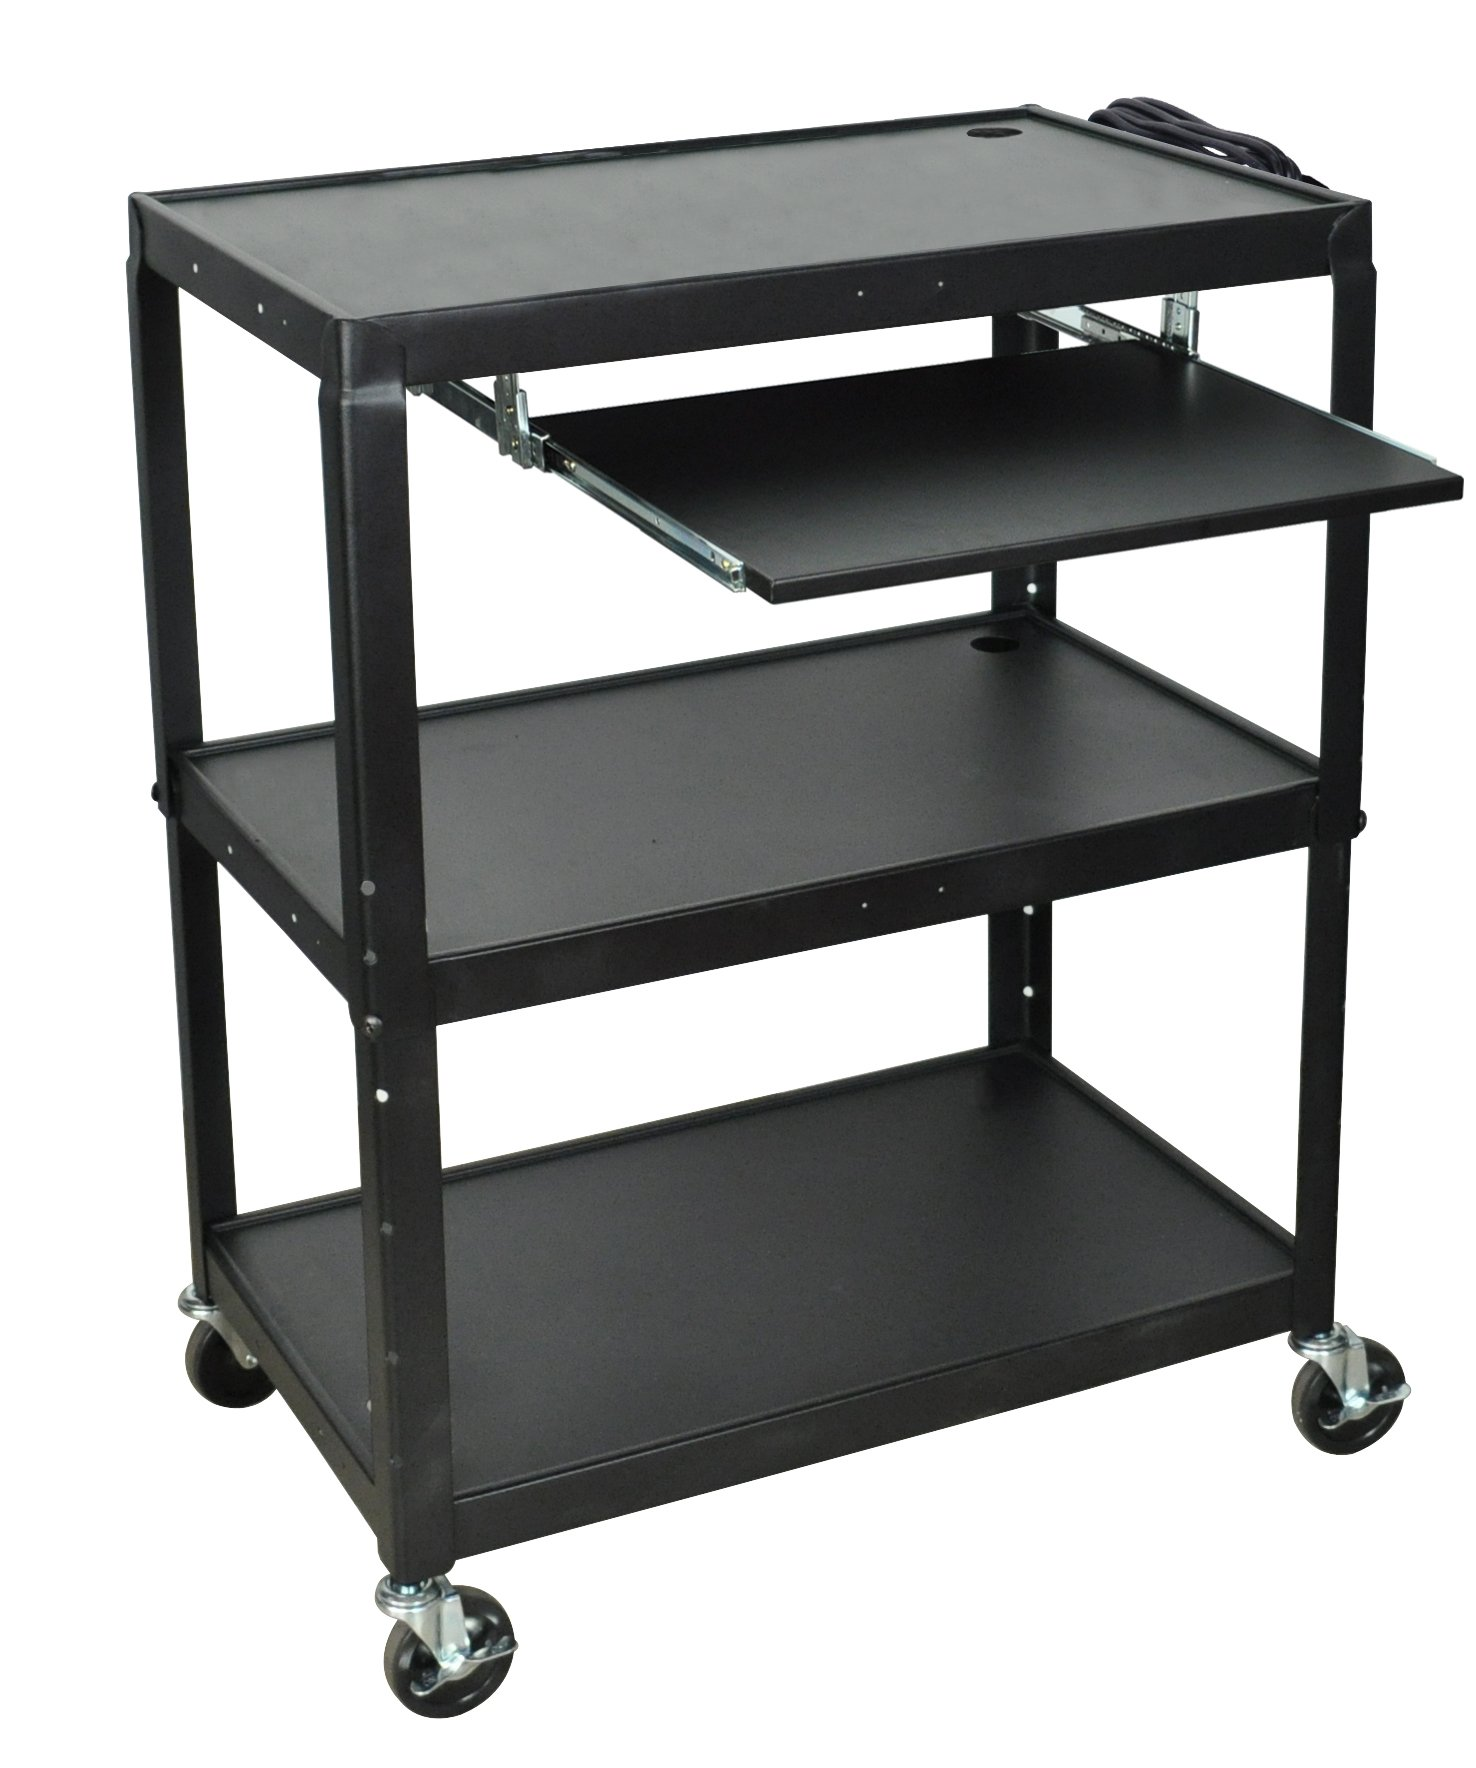 LUXOR AVJ42XLKB A/V Cart with Pullout Keyboard Shelf, Extra Wide, Adjustable Height, Steel by Luxor